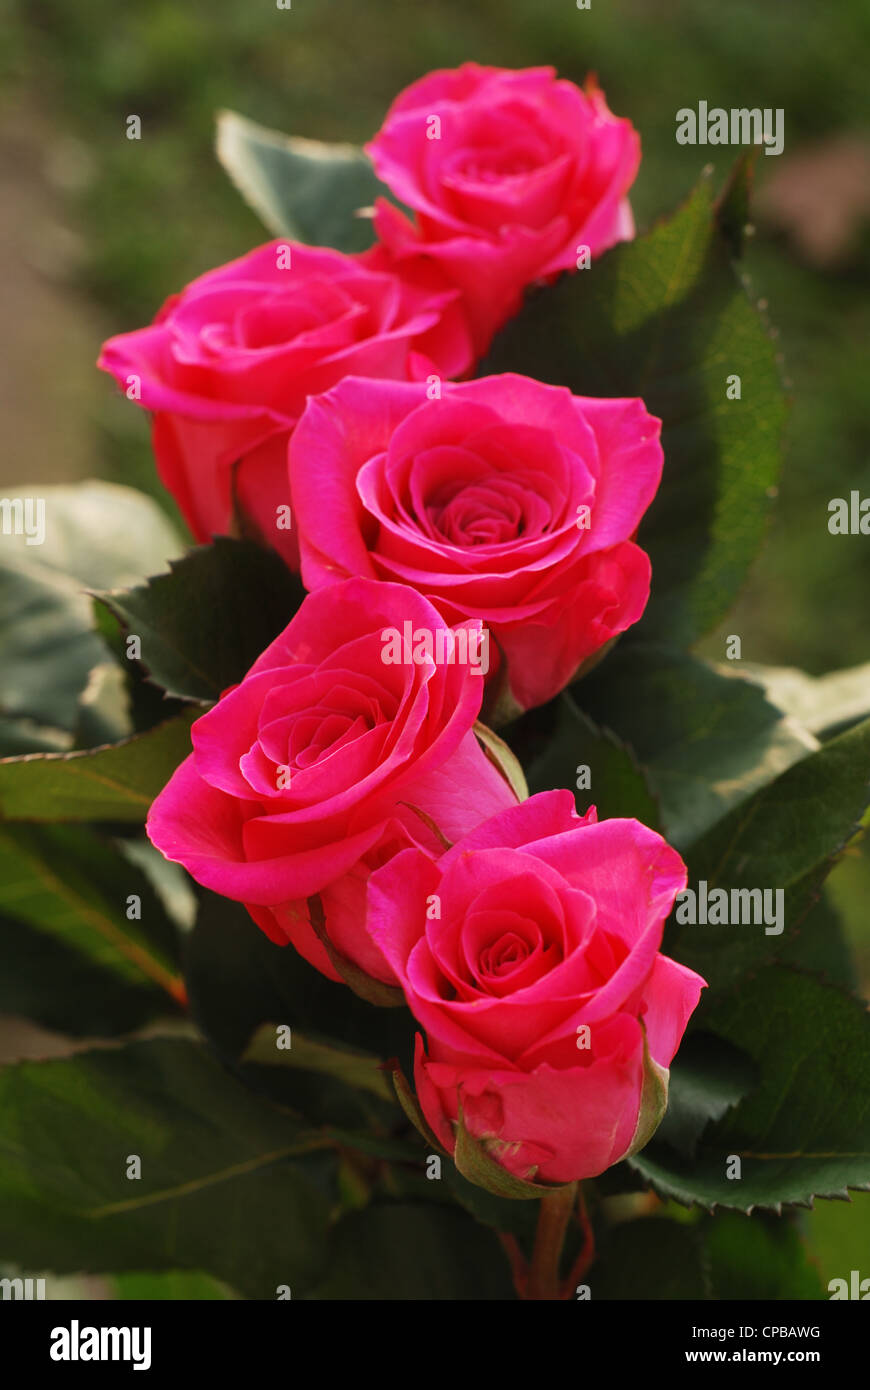 five scarlet beauty roses against green background Stock Photo